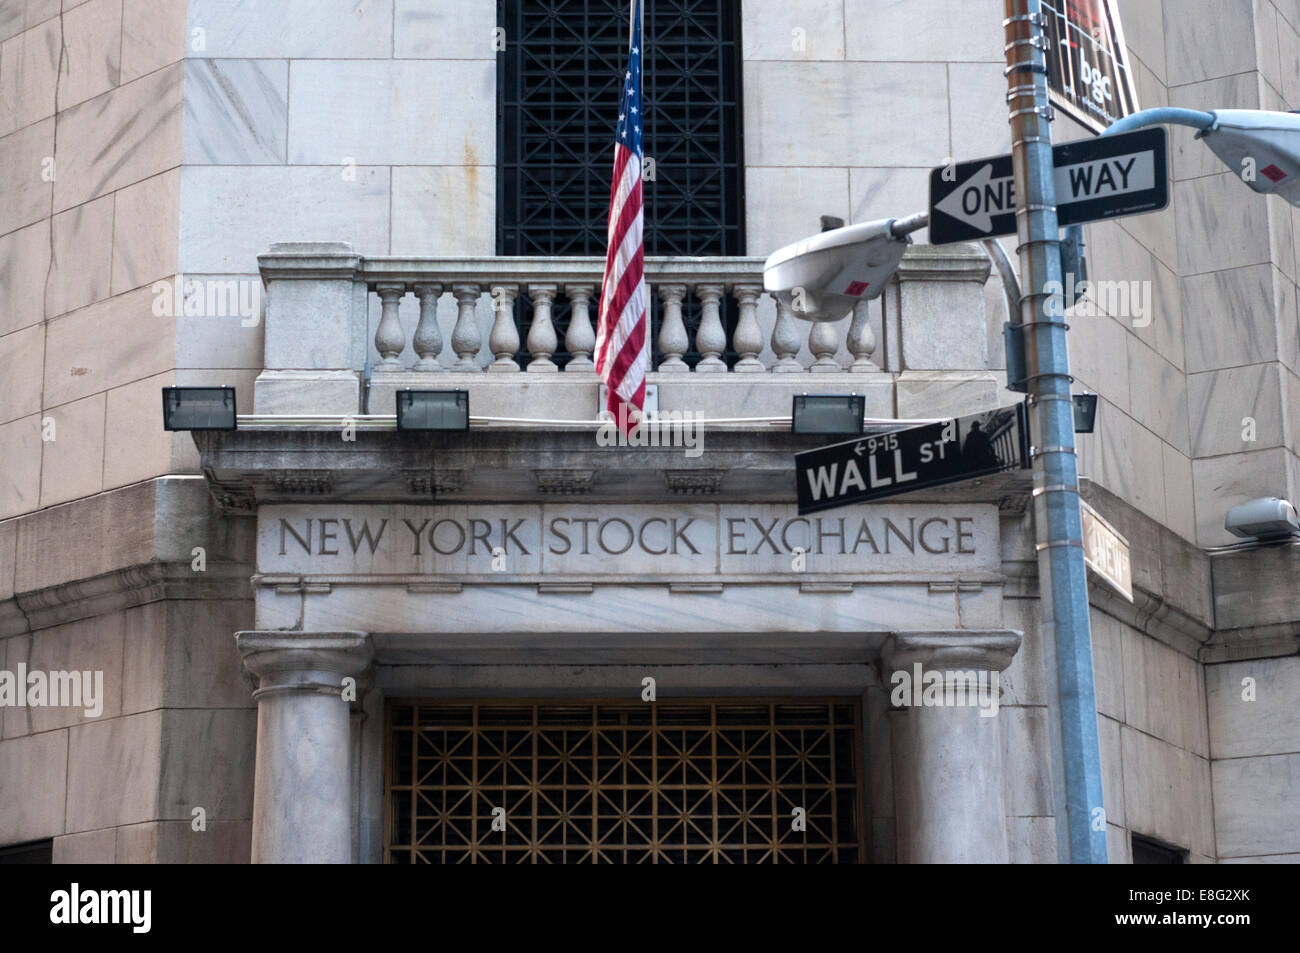 a history of the nyse the new york stock exchange The nyse group, inc, a for-profit, publicly-owned company, is formed out of the merger of the new york stock exchange and archipelago holdings, inc the merger is the largest-ever among securities exchanges up to this time.